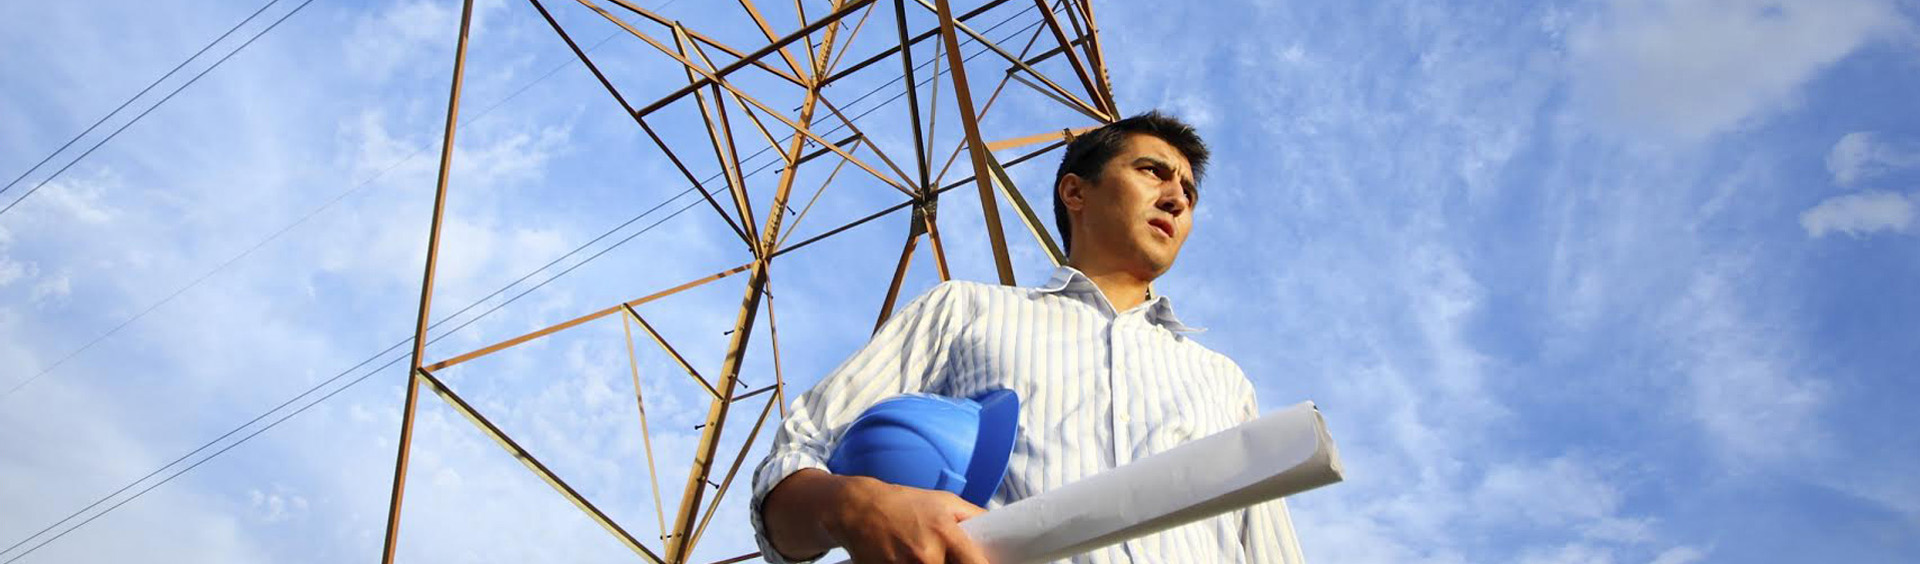 Man Standing Under Powerlines and Holding Construction Plans